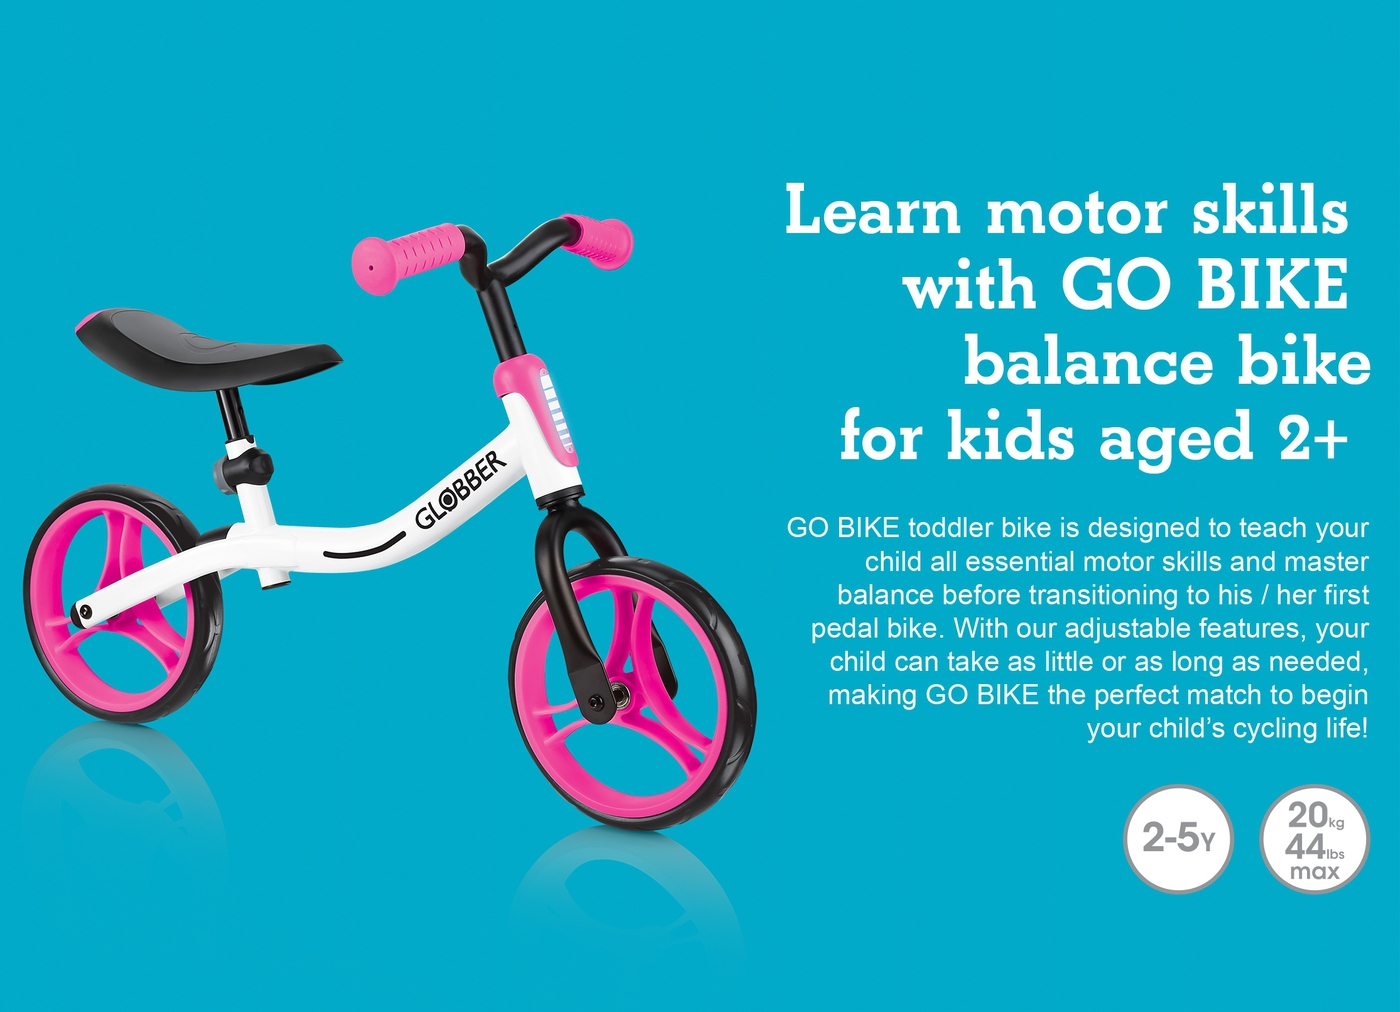 Learn motor skills with GO BIKE balance bike for kids aged 2+